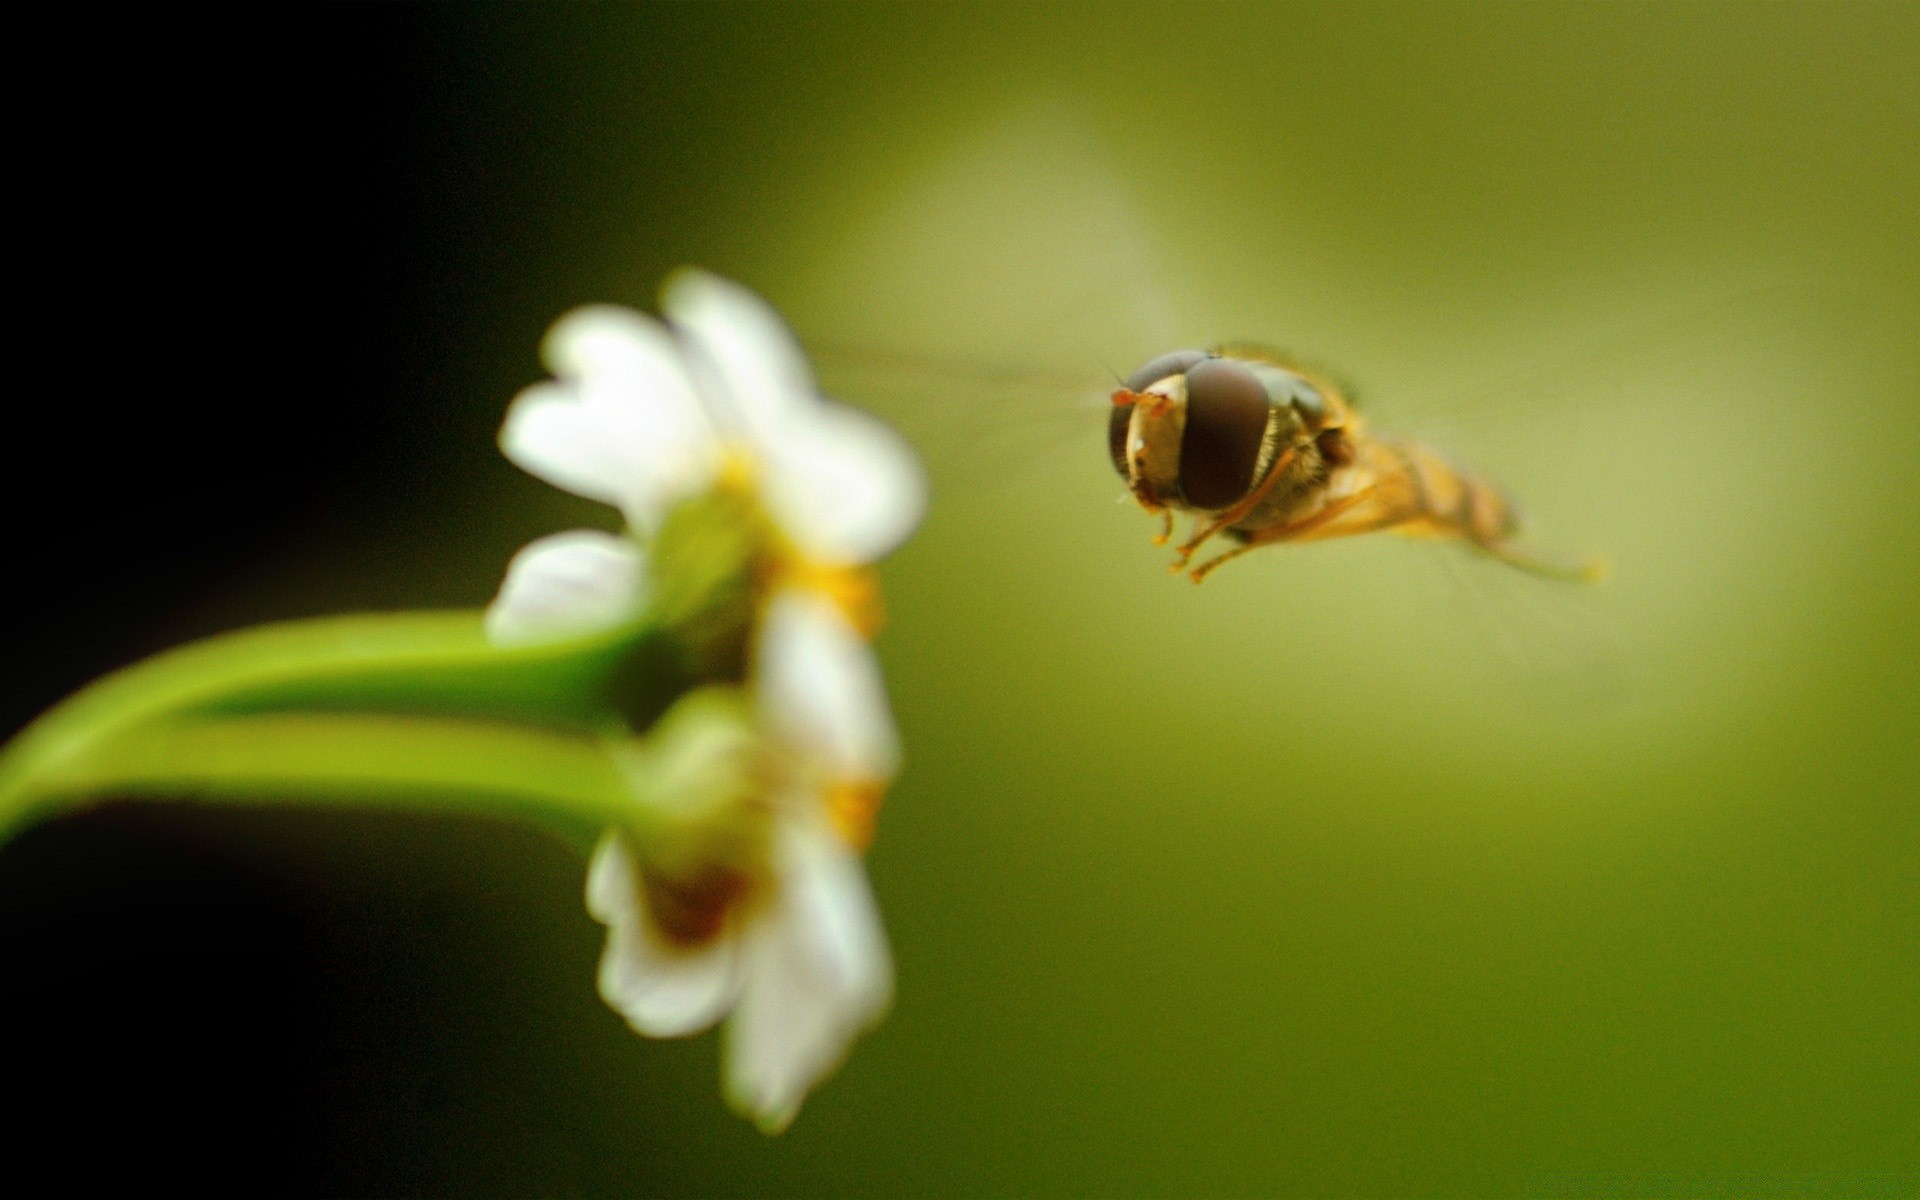 insects insect nature flower blur outdoors garden leaf invertebrate wildlife flora bee growth biology